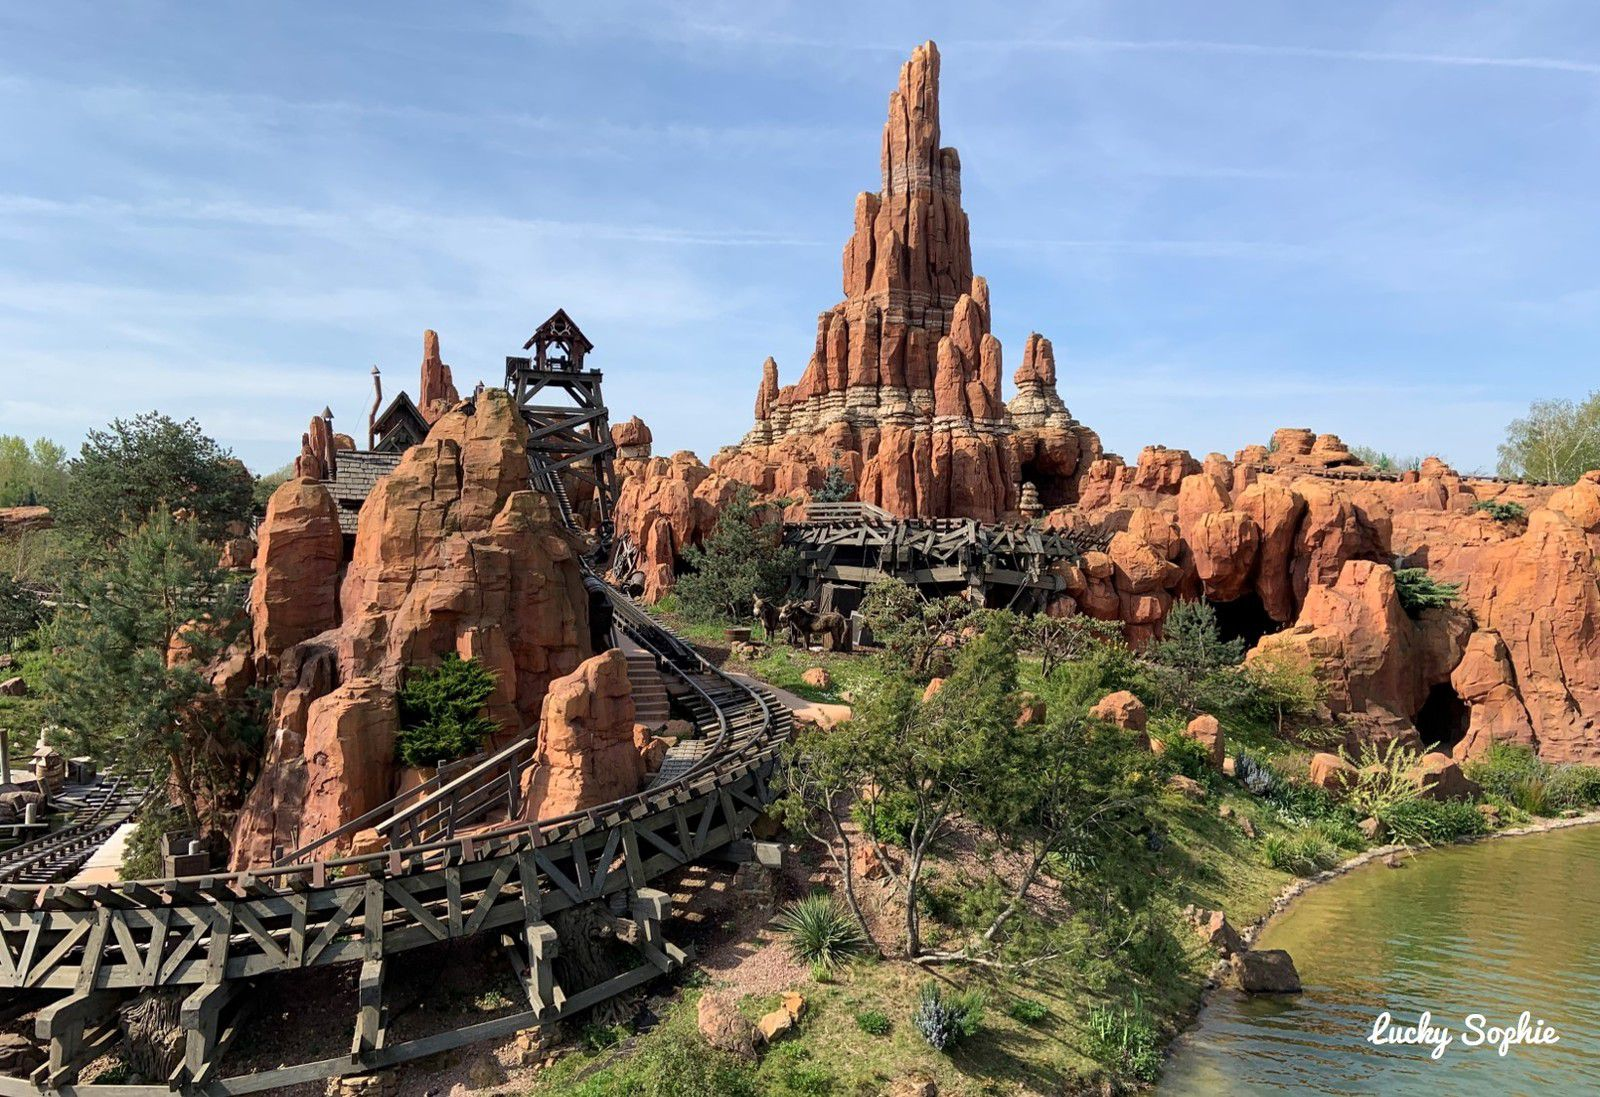 L'une des attractions favorites où il y a toujours beaucoup de monde : Big Thunder Mountain. Fast pass obligatoire !